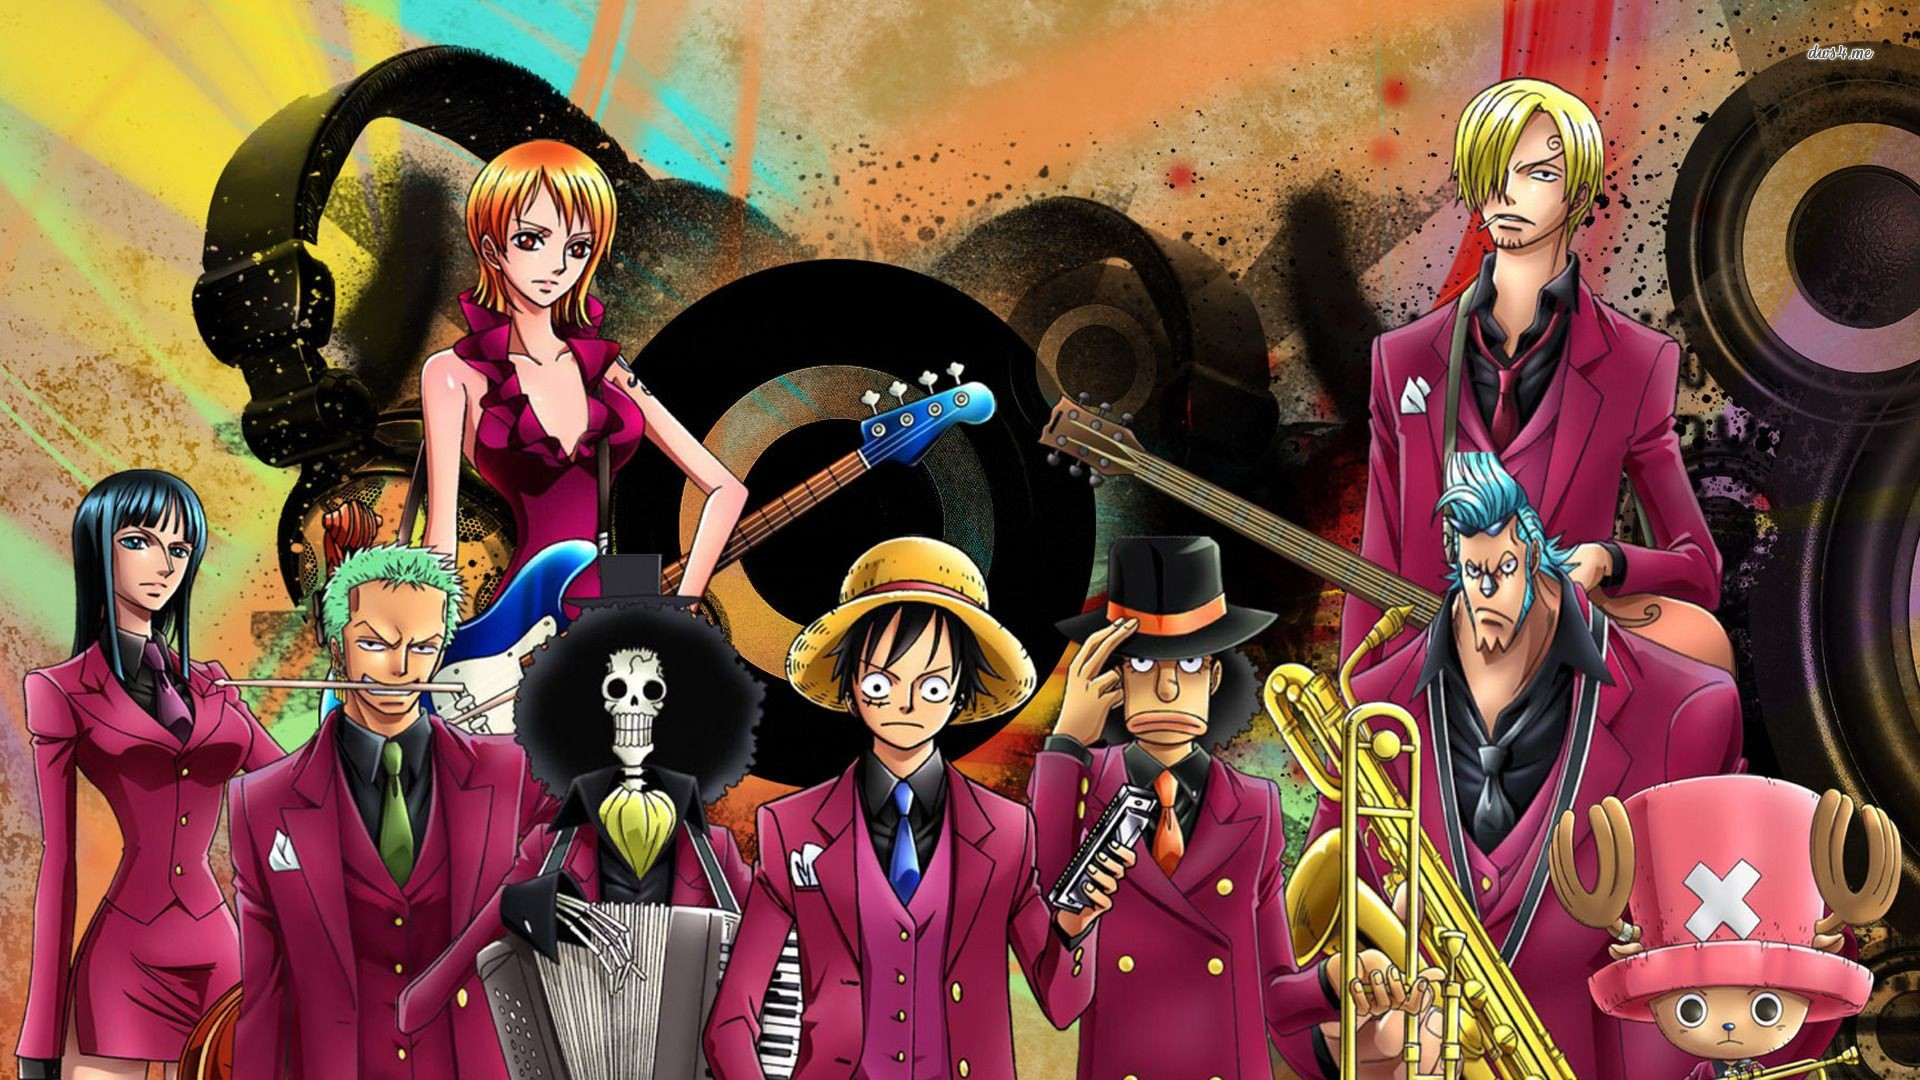 Res: 1920x1080, One Piece Desktop Wallpapers One Piece Wallpapers HD